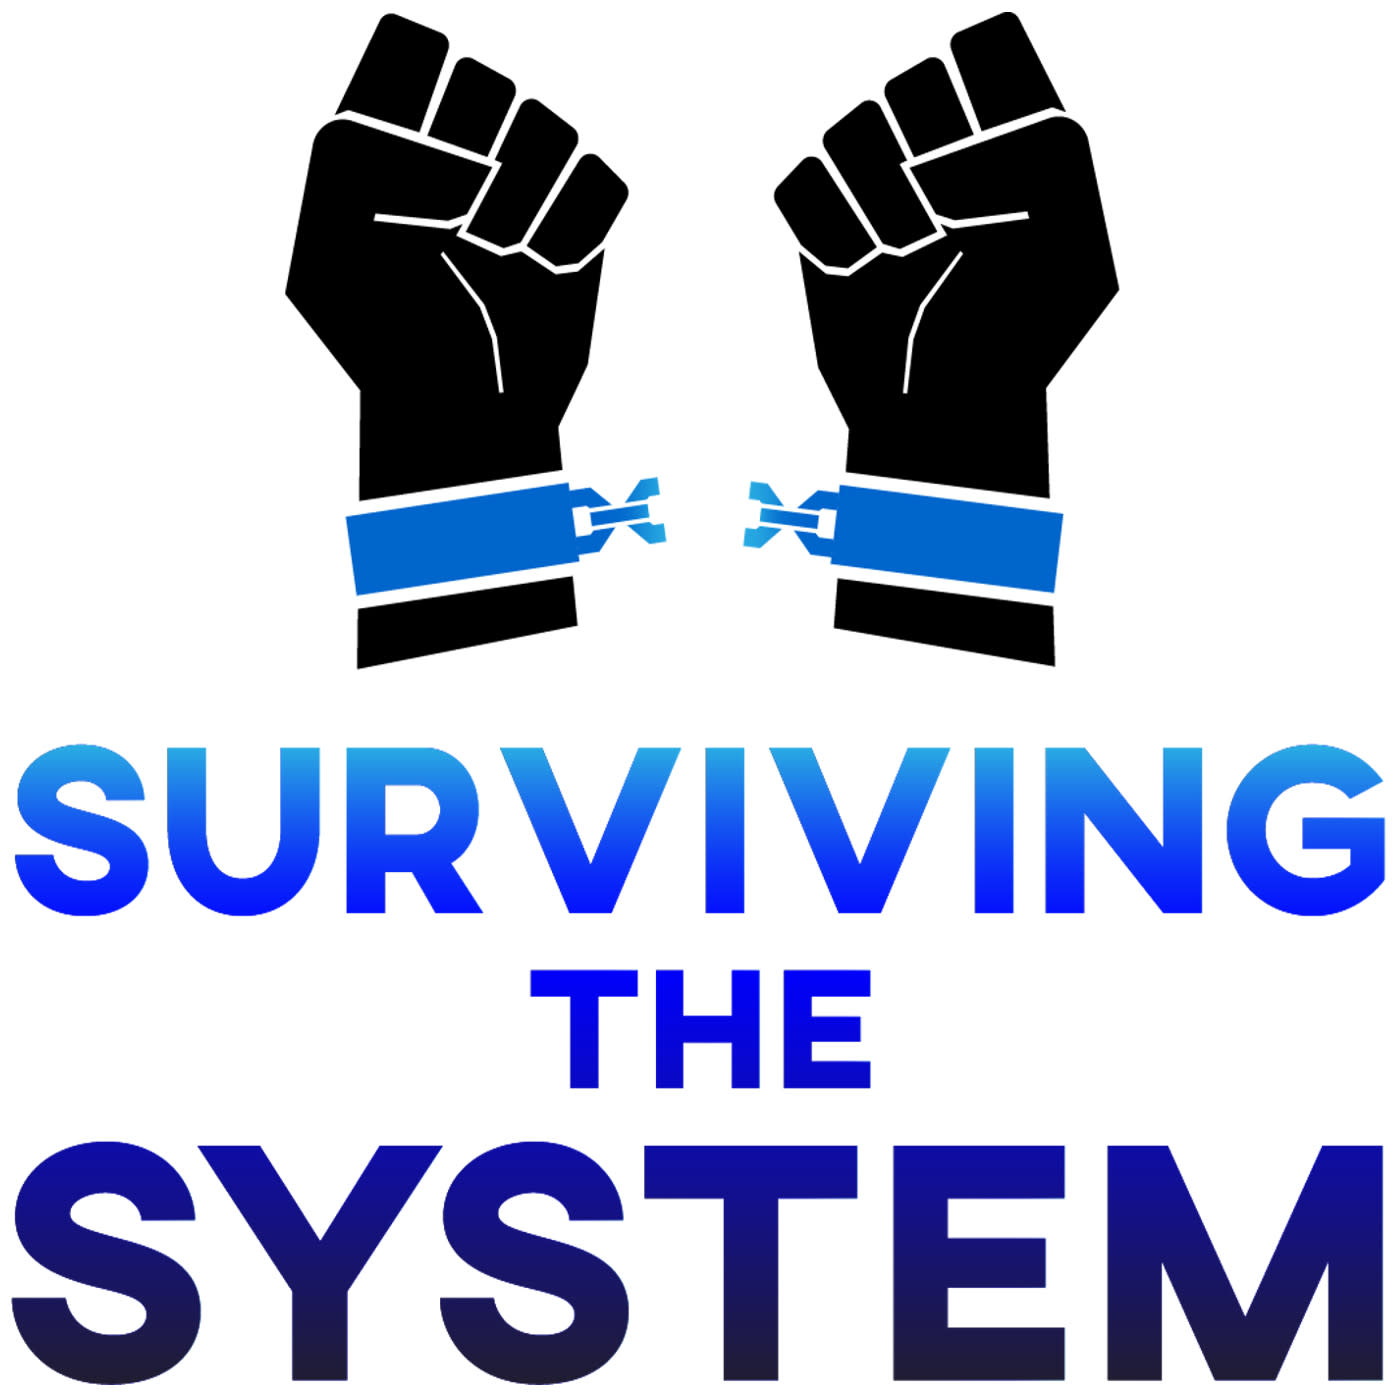 Artwork for podcast Surviving The System